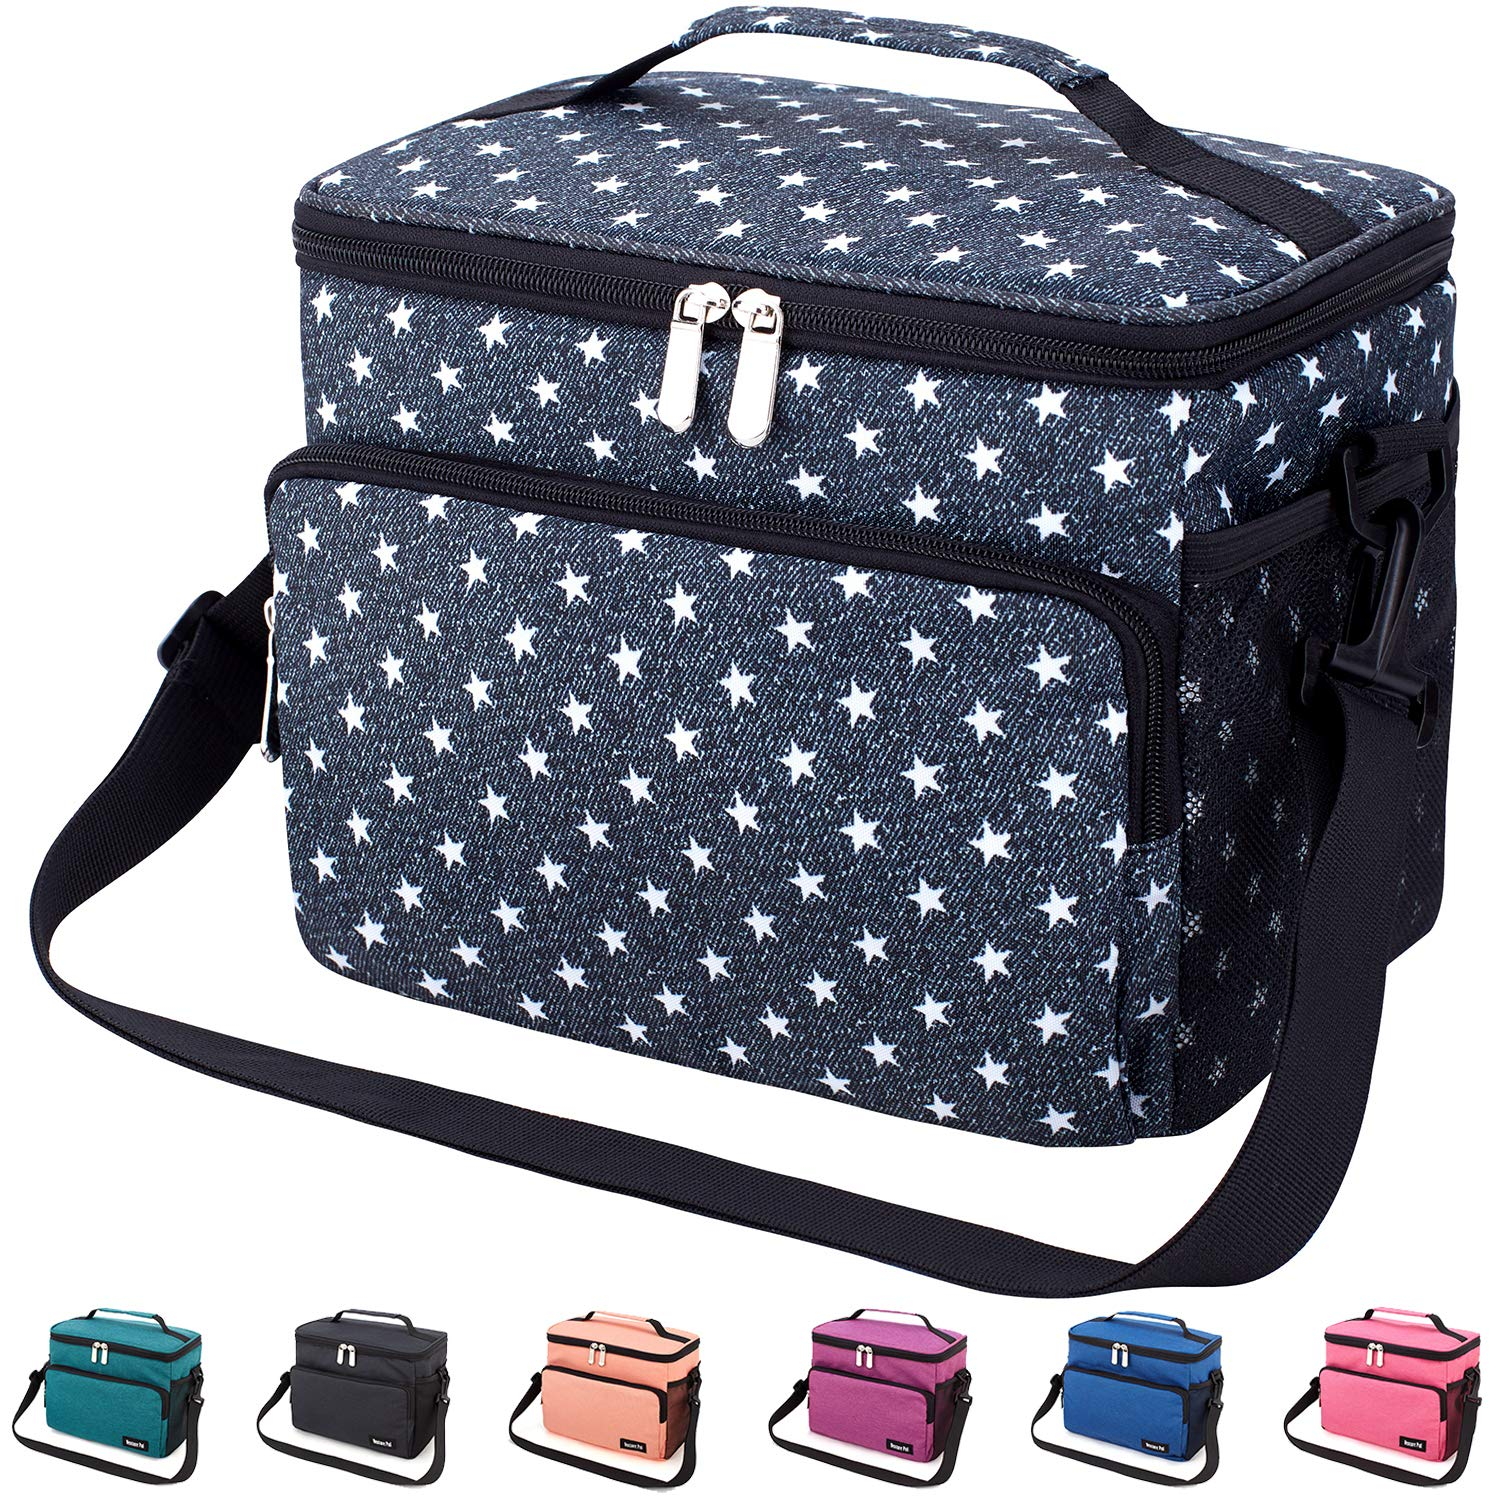 3237937e3f96 Leakproof Reusable Insulated Cooler Lunch Bag - Office Work School Picnic  Hiking Beach Lunch Box Organizer with Adjustable Shoulder Strap for ...